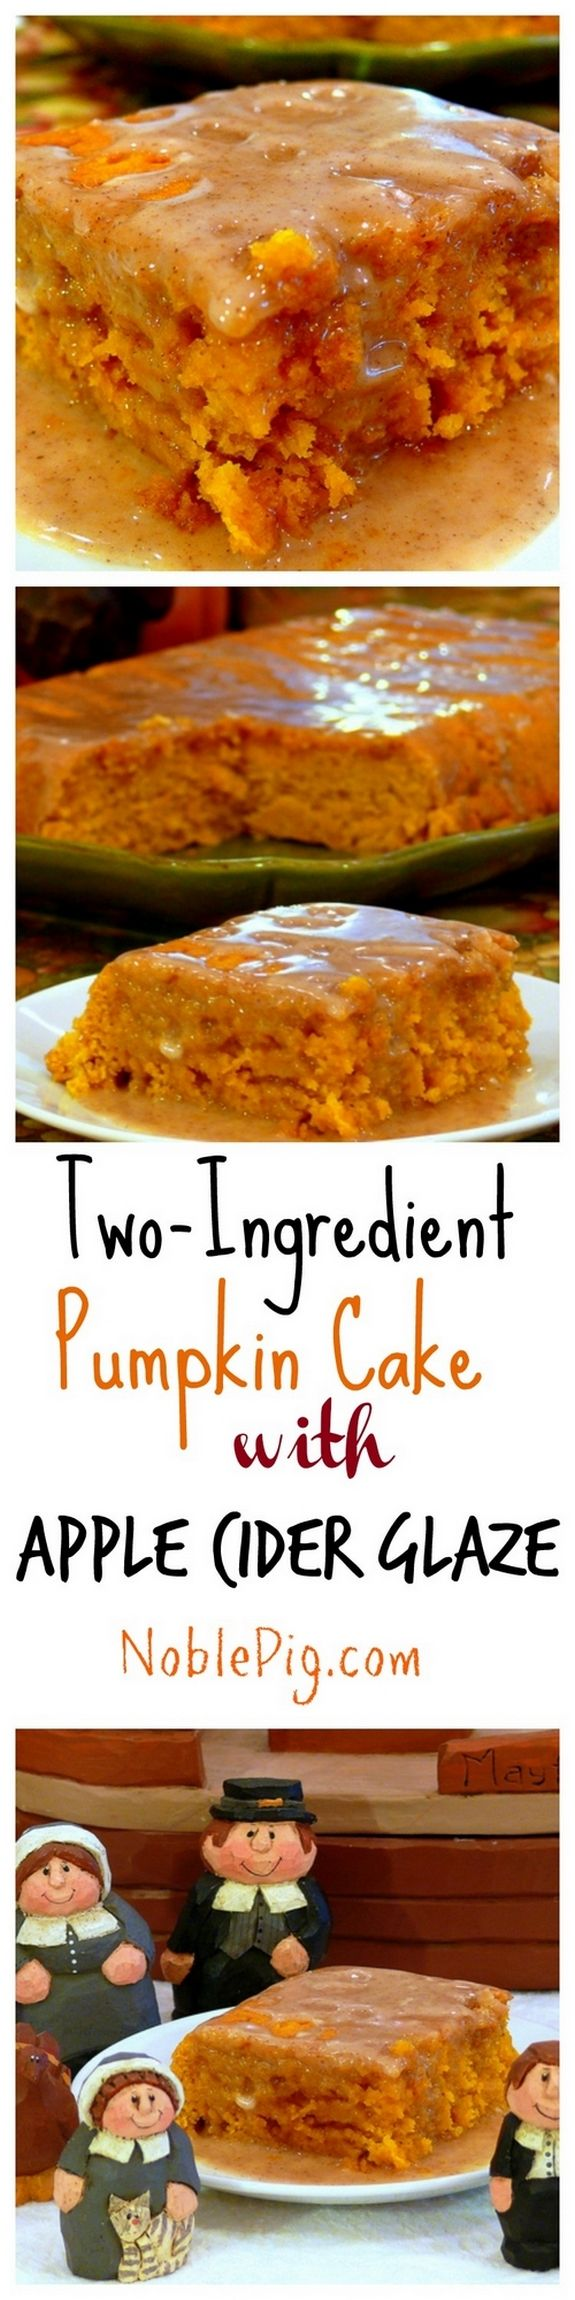 Two Ingredient Pumpkin Cake with Apple Cider Glaze Collage